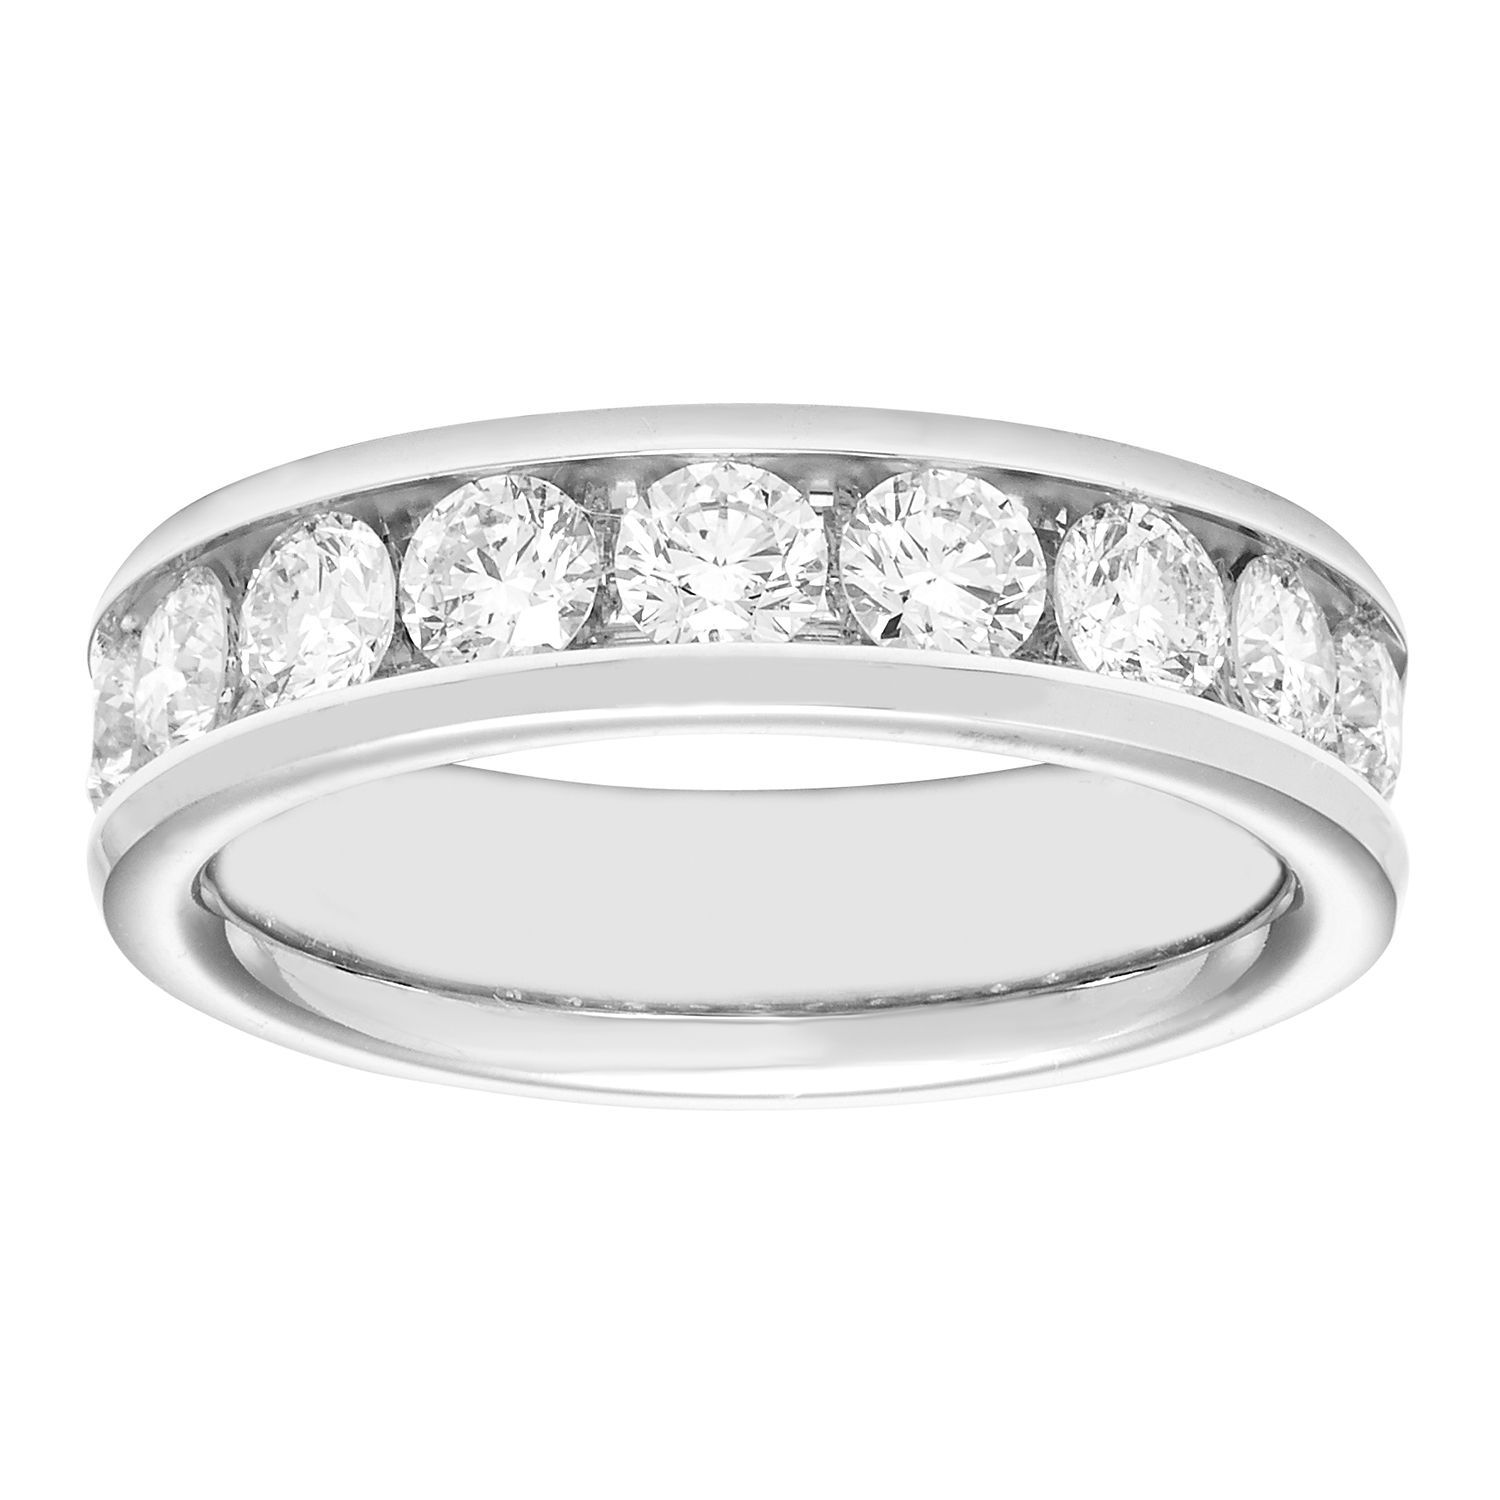 ct single in topic wg rings meeee shoooow jewellery diamond prong anniversary eternity